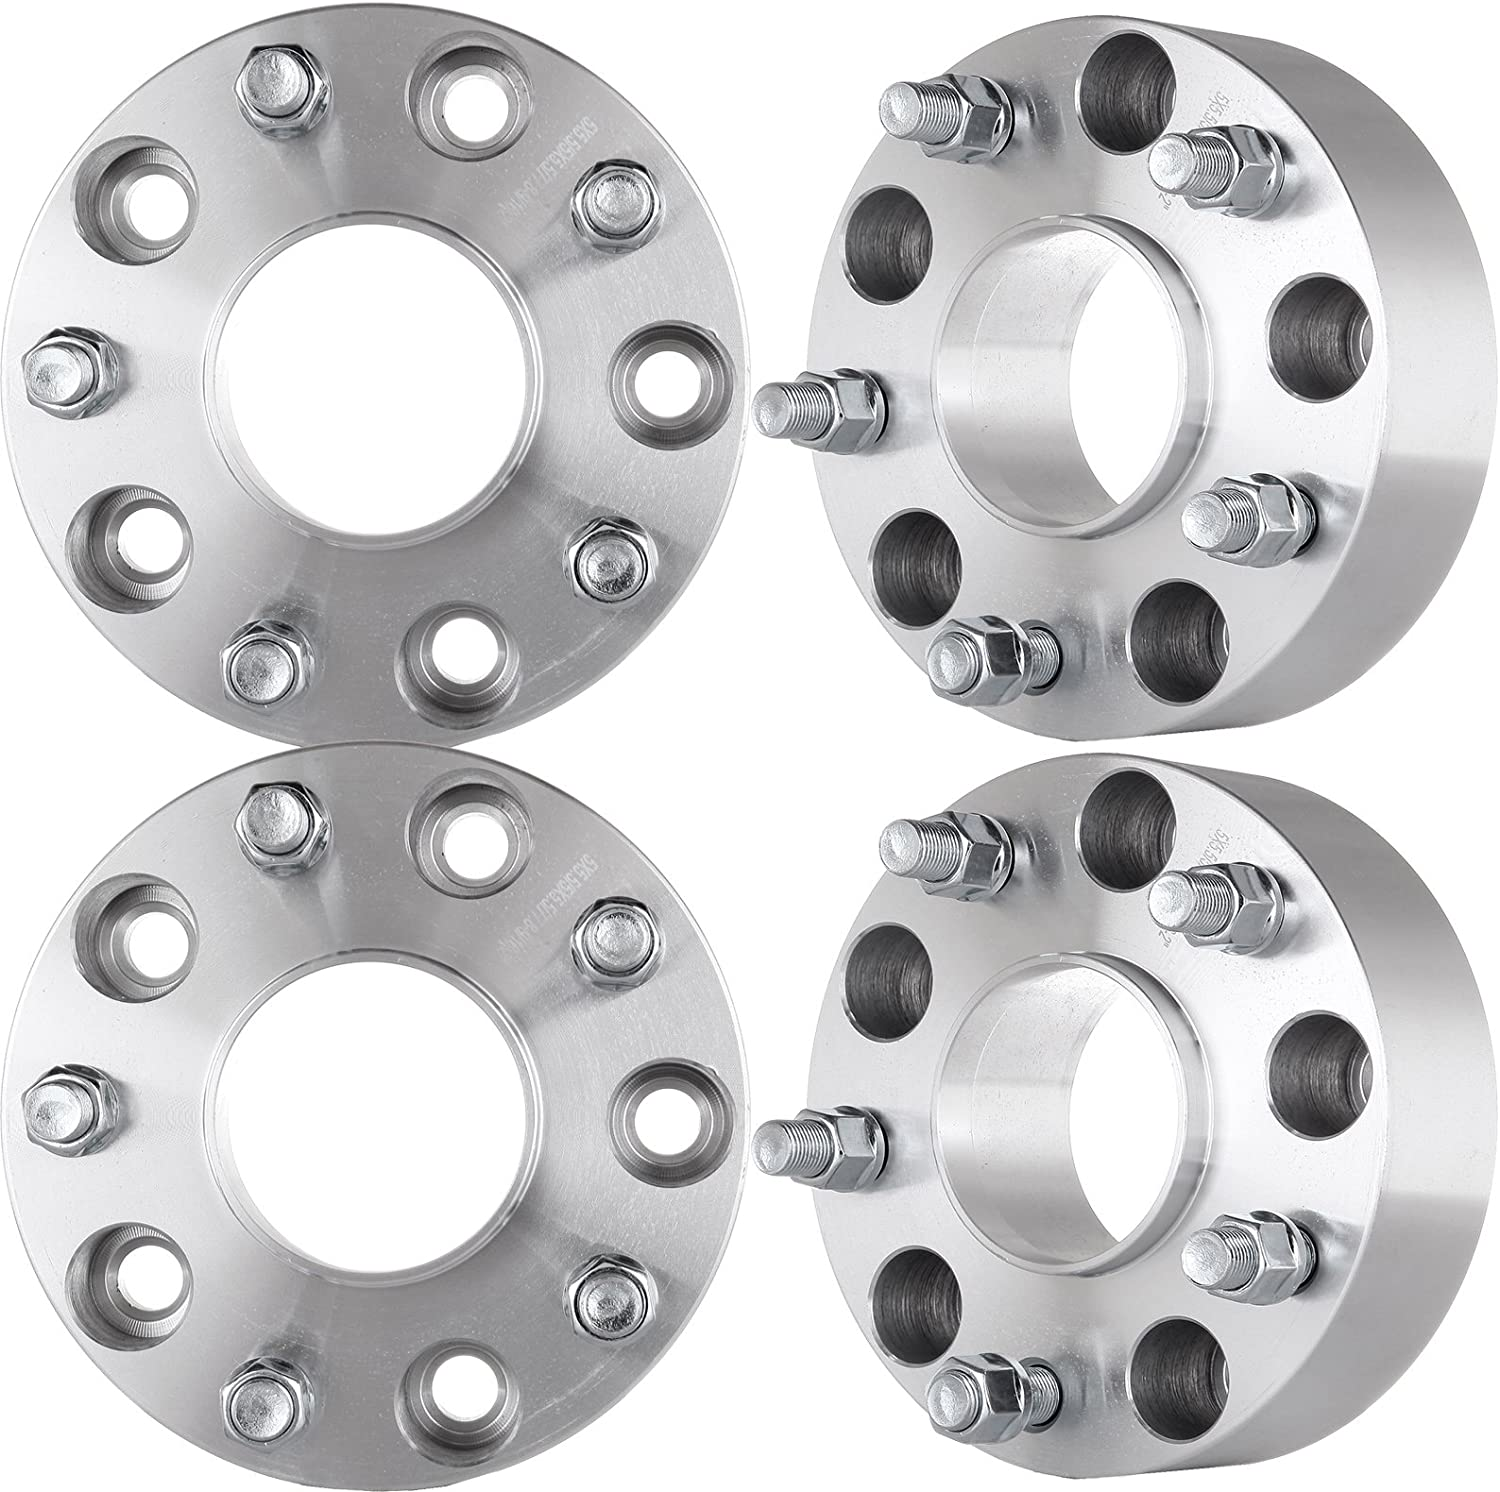 ECCPP Import 4X 5x139.7mm Hubcentric Wheel Adapter 5x5.5 Max 64% OFF 2